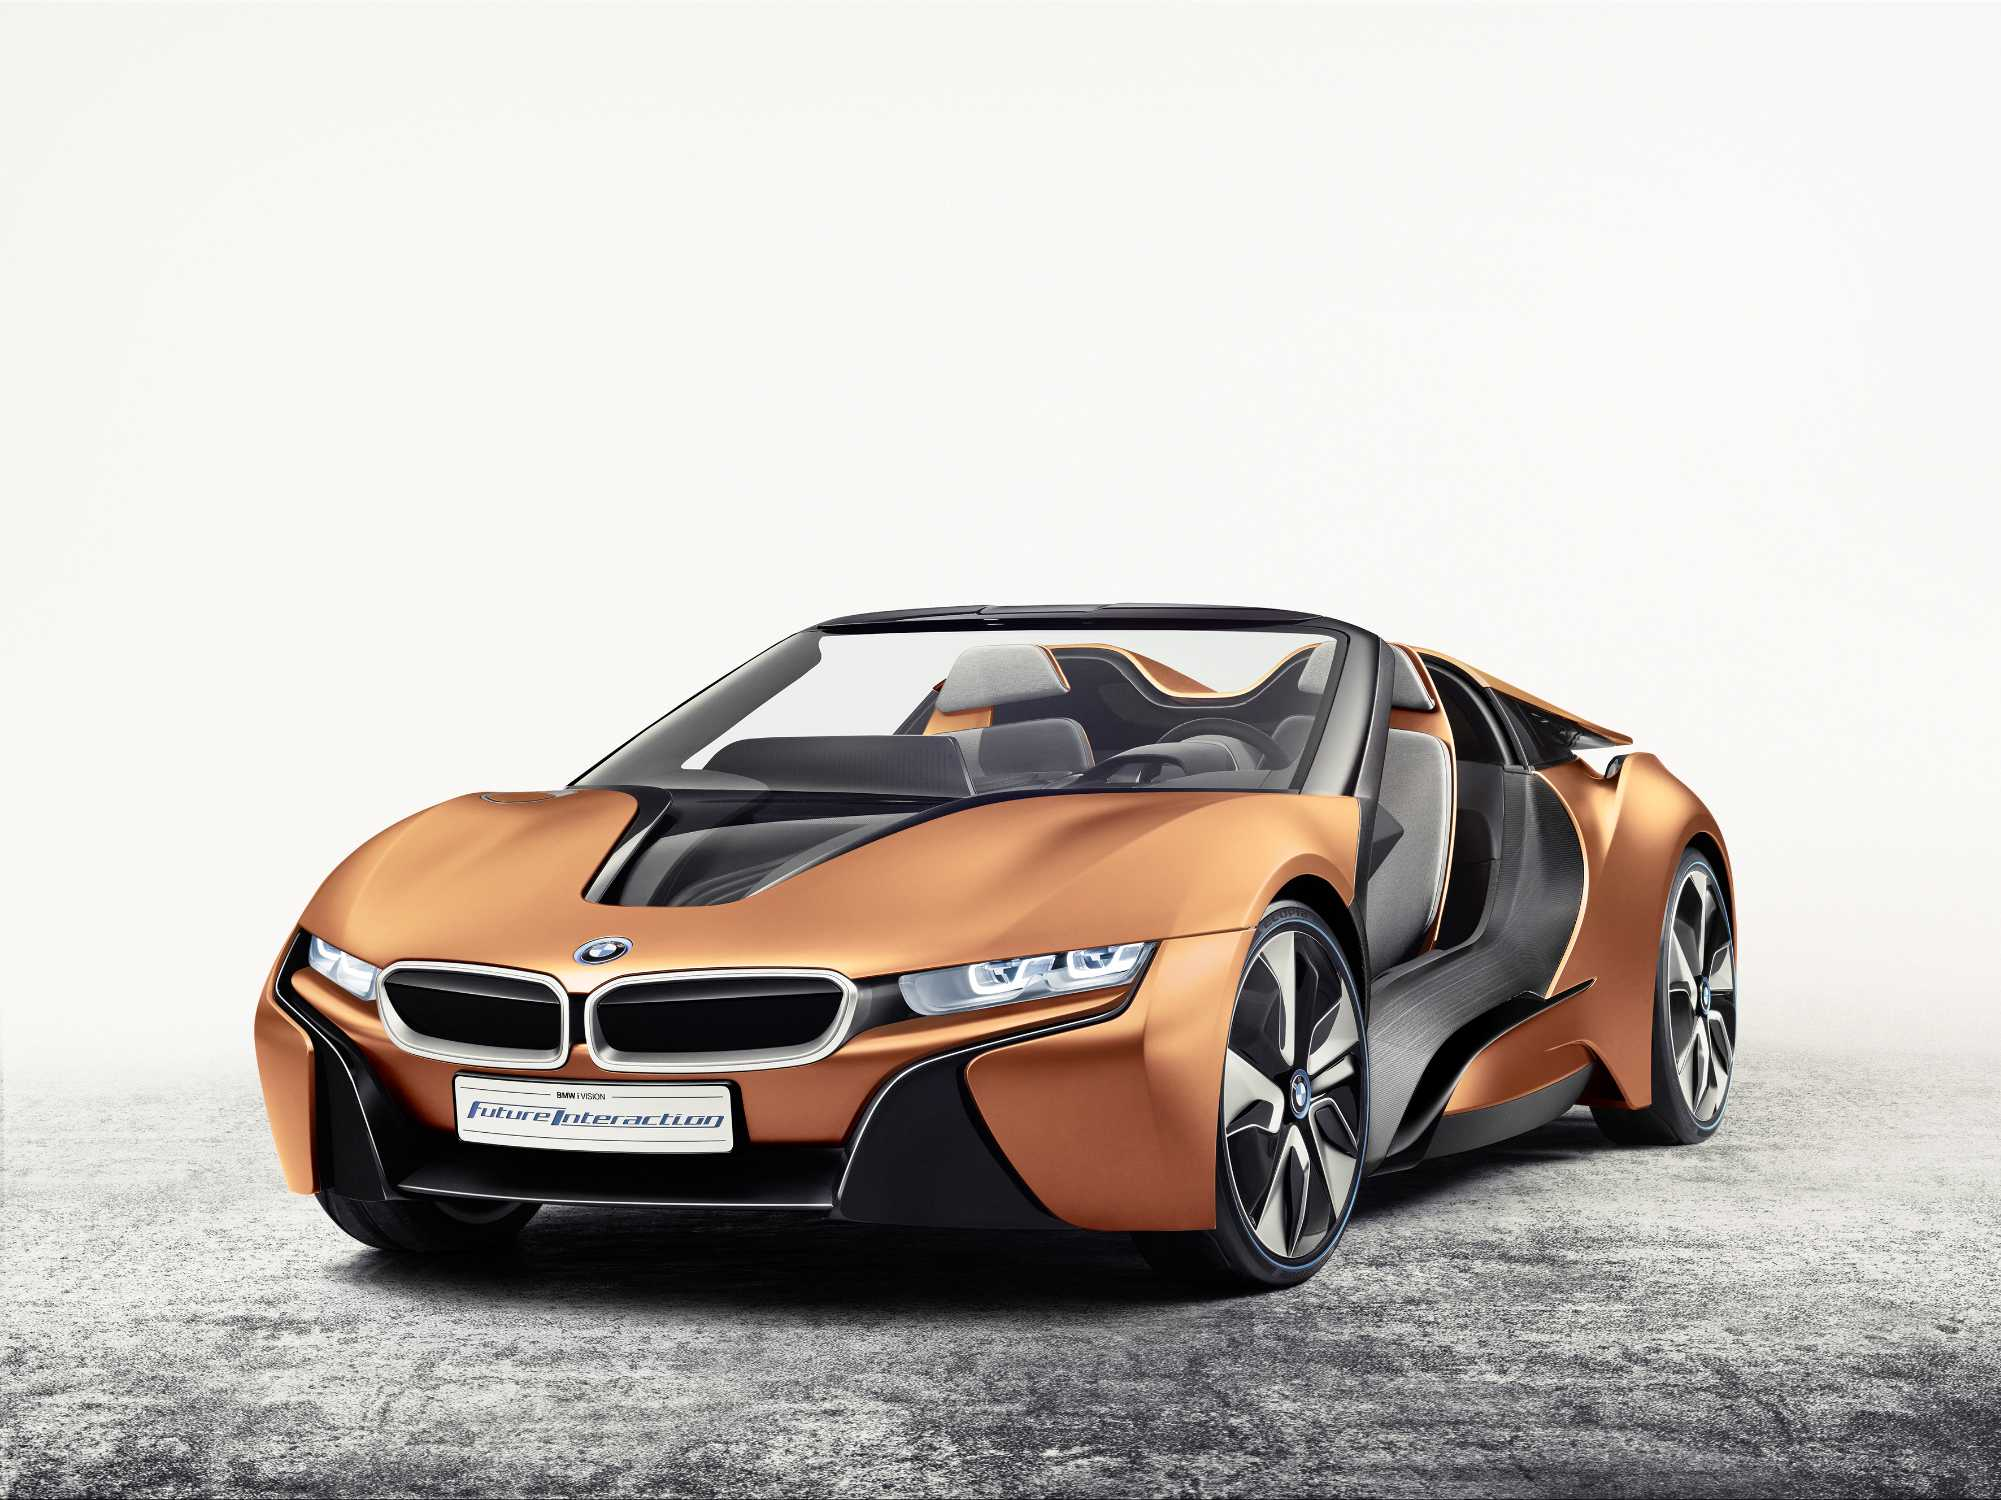 Bmw I Vision Future Interaction Wins Special Prize At Auto Test Sieger 2016 Awards Concept Car Shown At The Ces 2016 Earns New Distinction